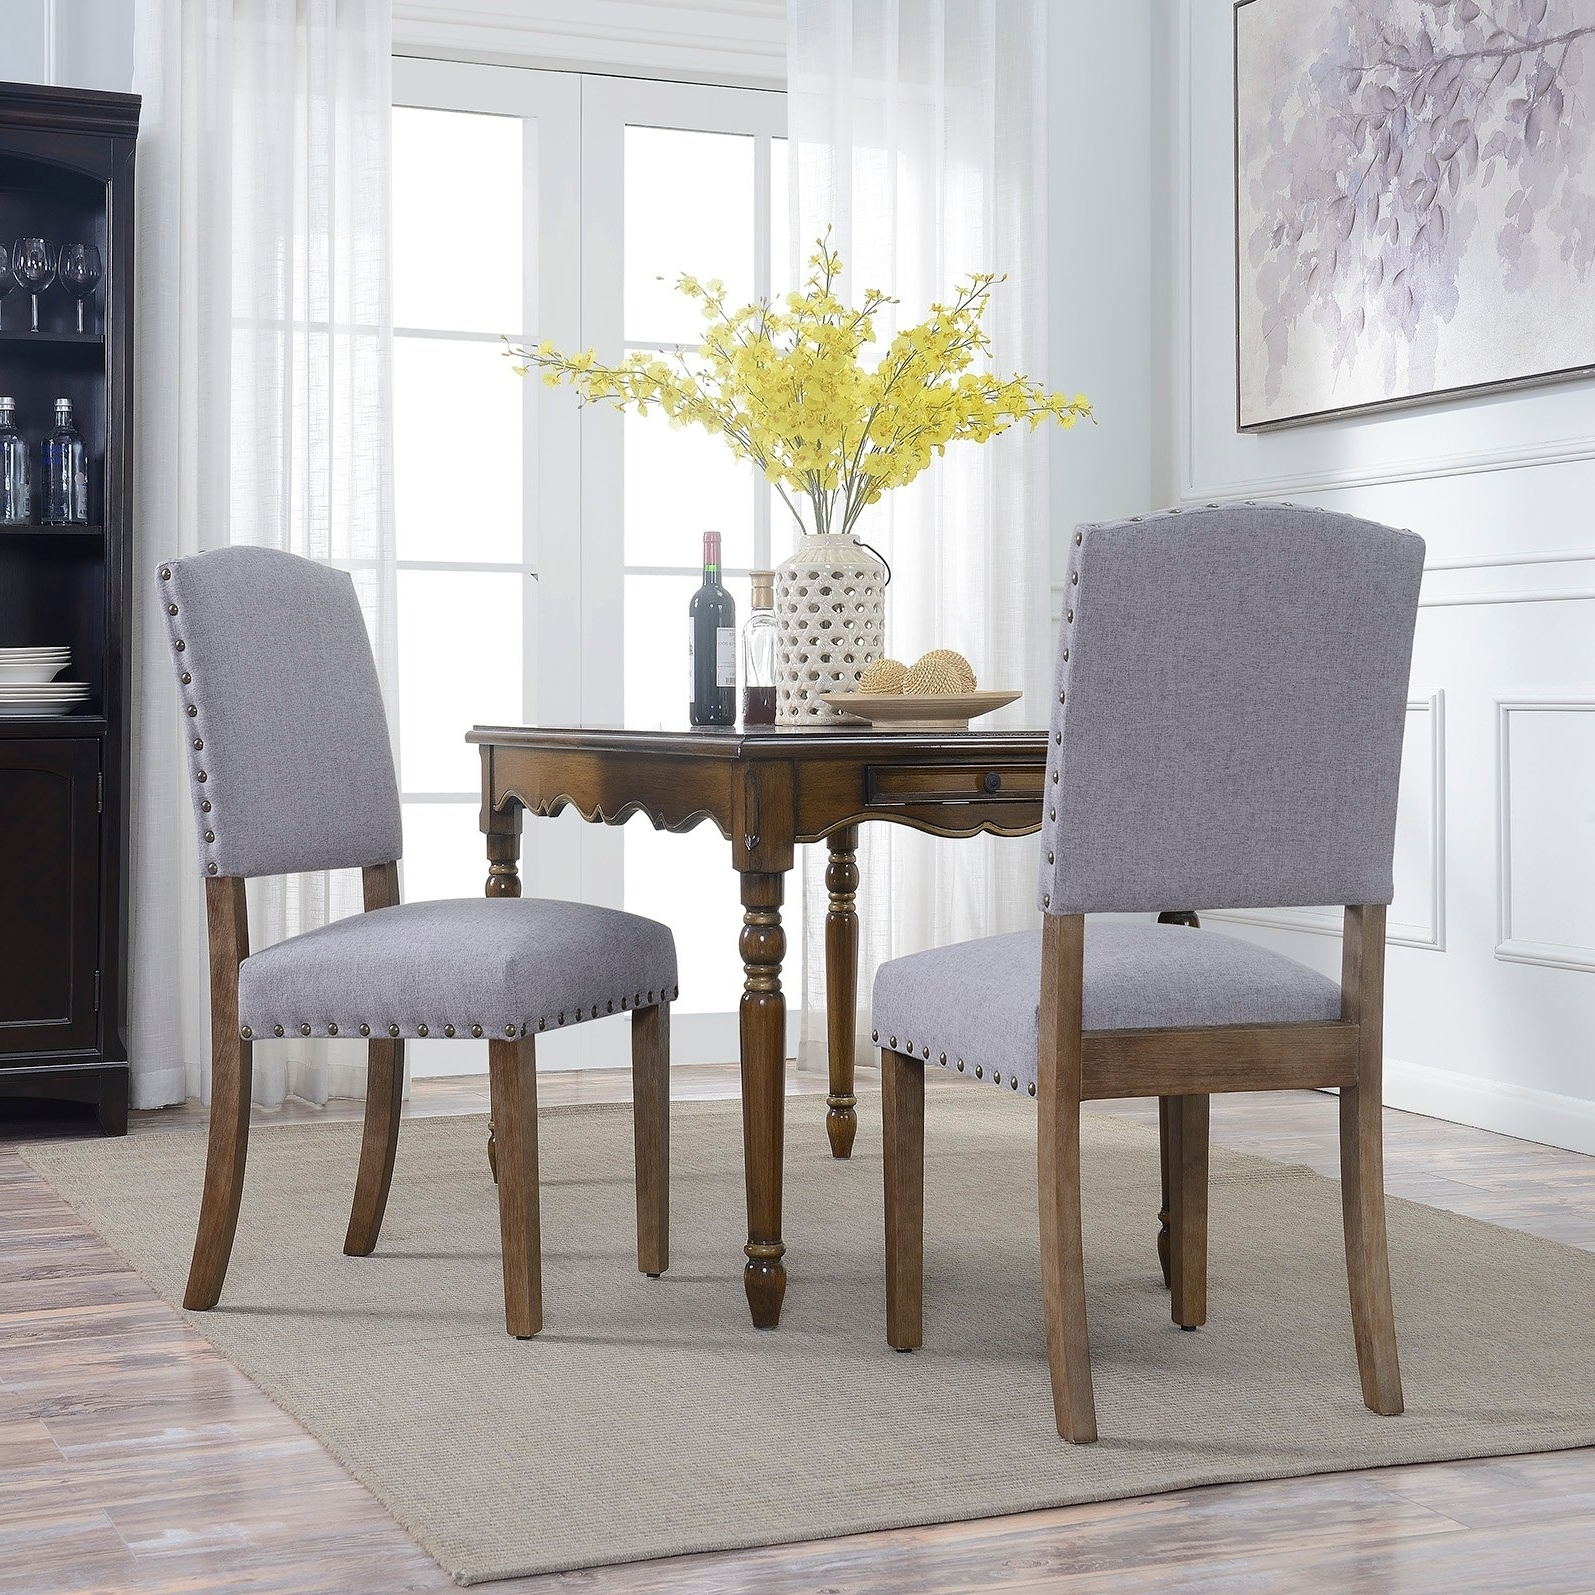 Widely Used Caira Black 7 Piece Dining Sets With Upholstered Side Chairs Regarding Shop Belleze Contemporary Classic Dining Chair Set Of (2) Linen (View 25 of 25)